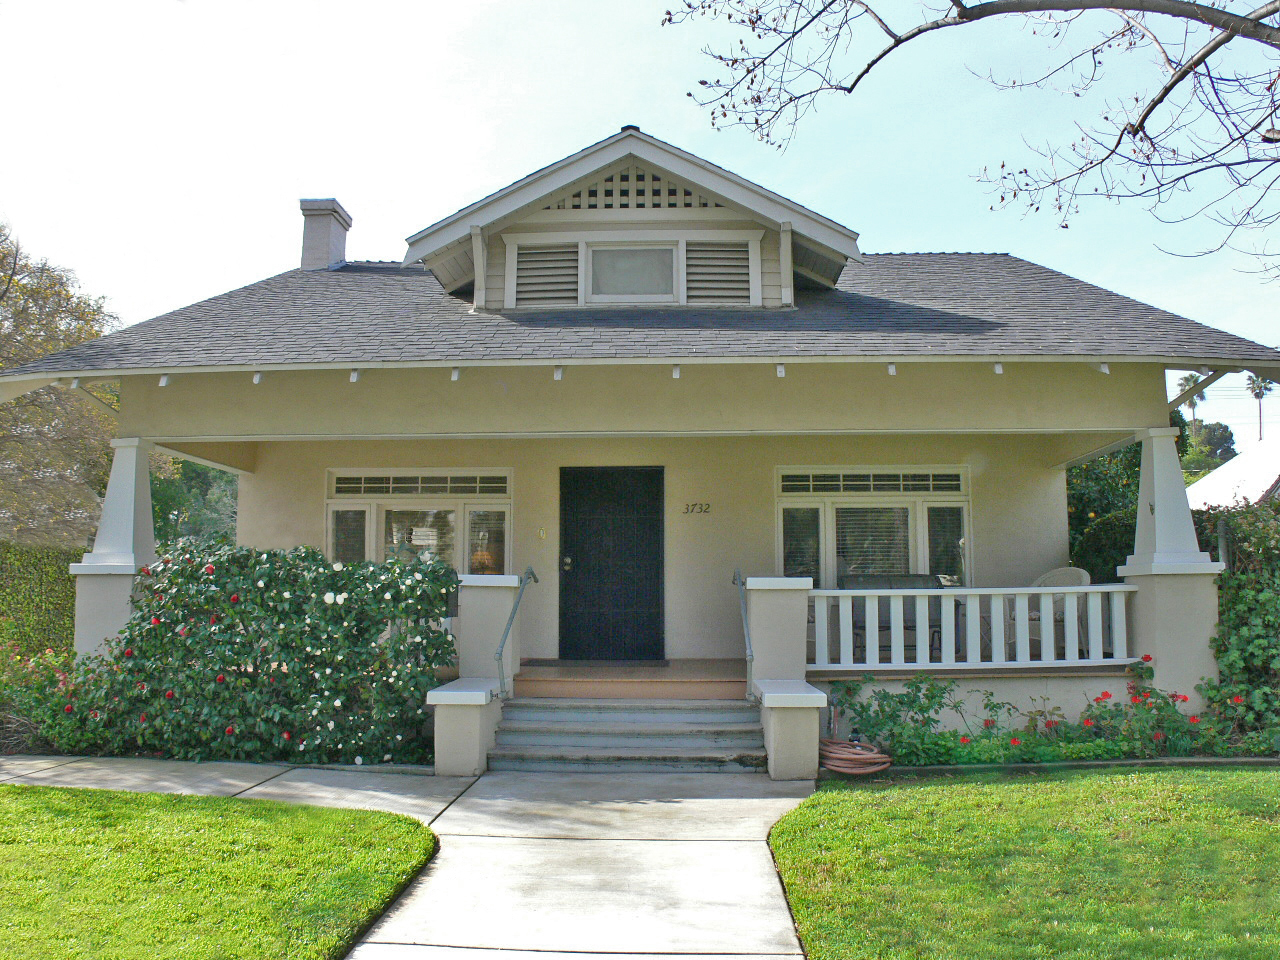 Classic California Bungalow with porch covered by overhanging roof and supported by substantial columns